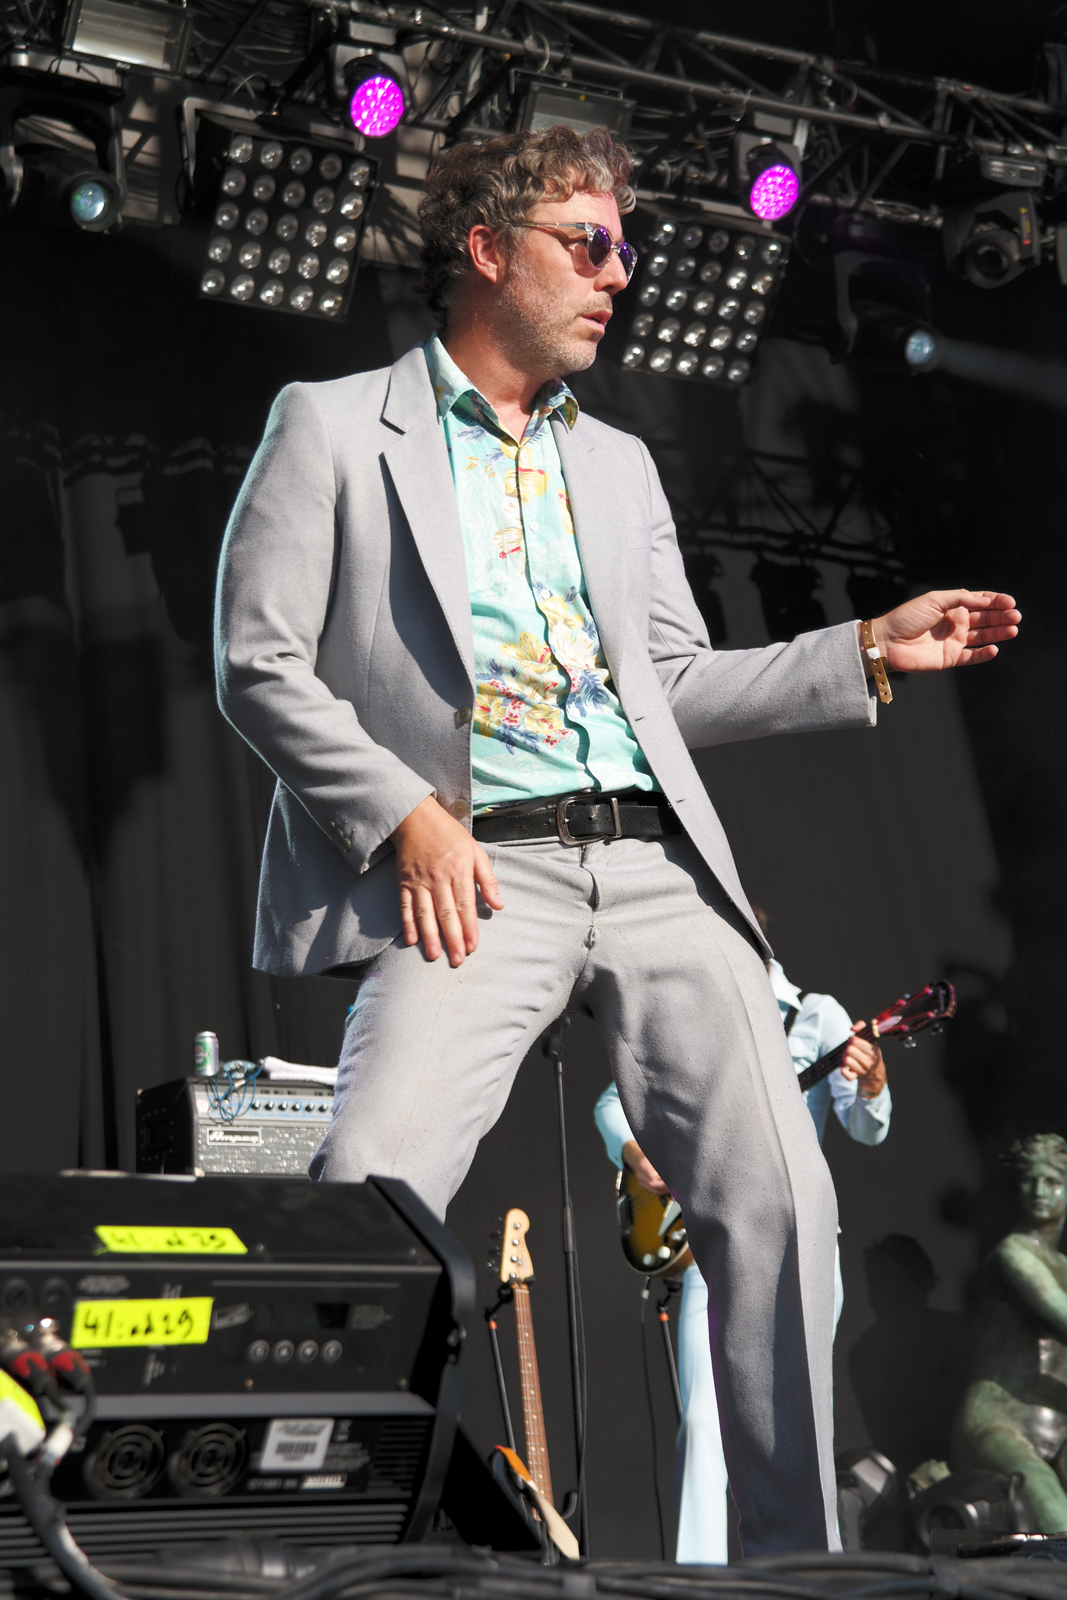 Baxter Dury dancing singer stage fnaclive 2015 festival paris france concert live it s a pleasure tour album stage photo by united states of paris blog